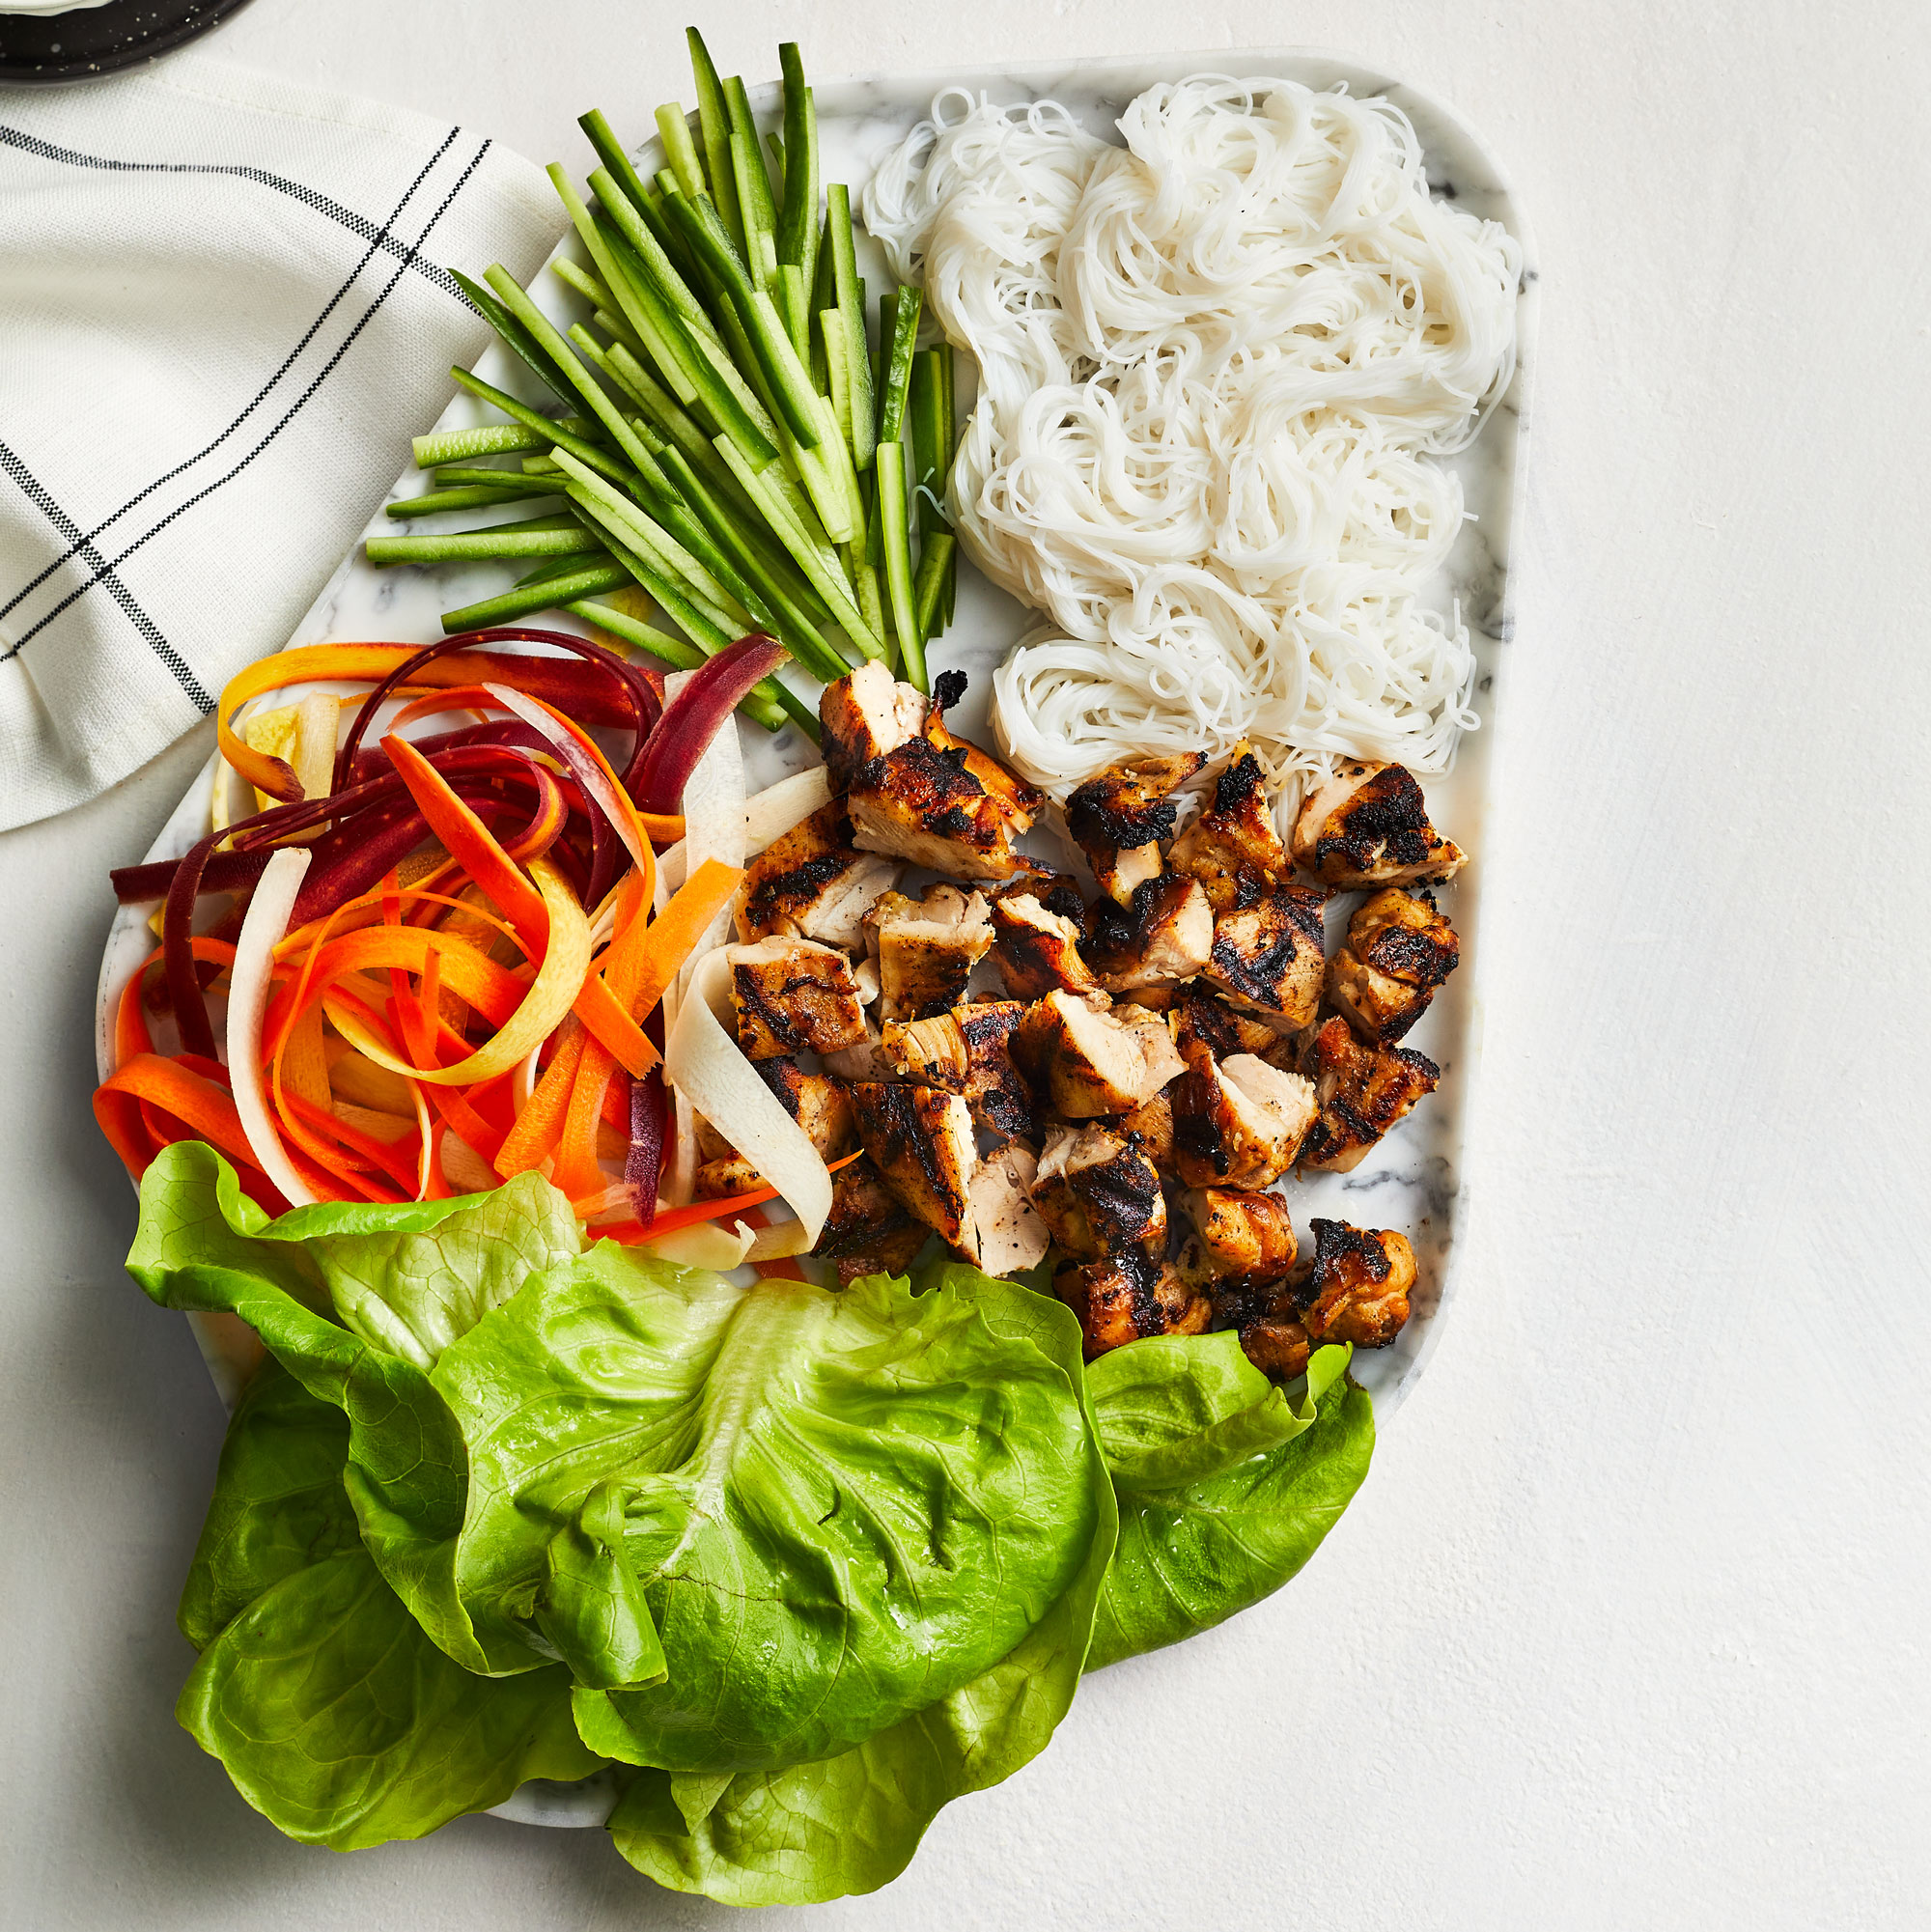 Cool and Crunchy Lettuce Wraps